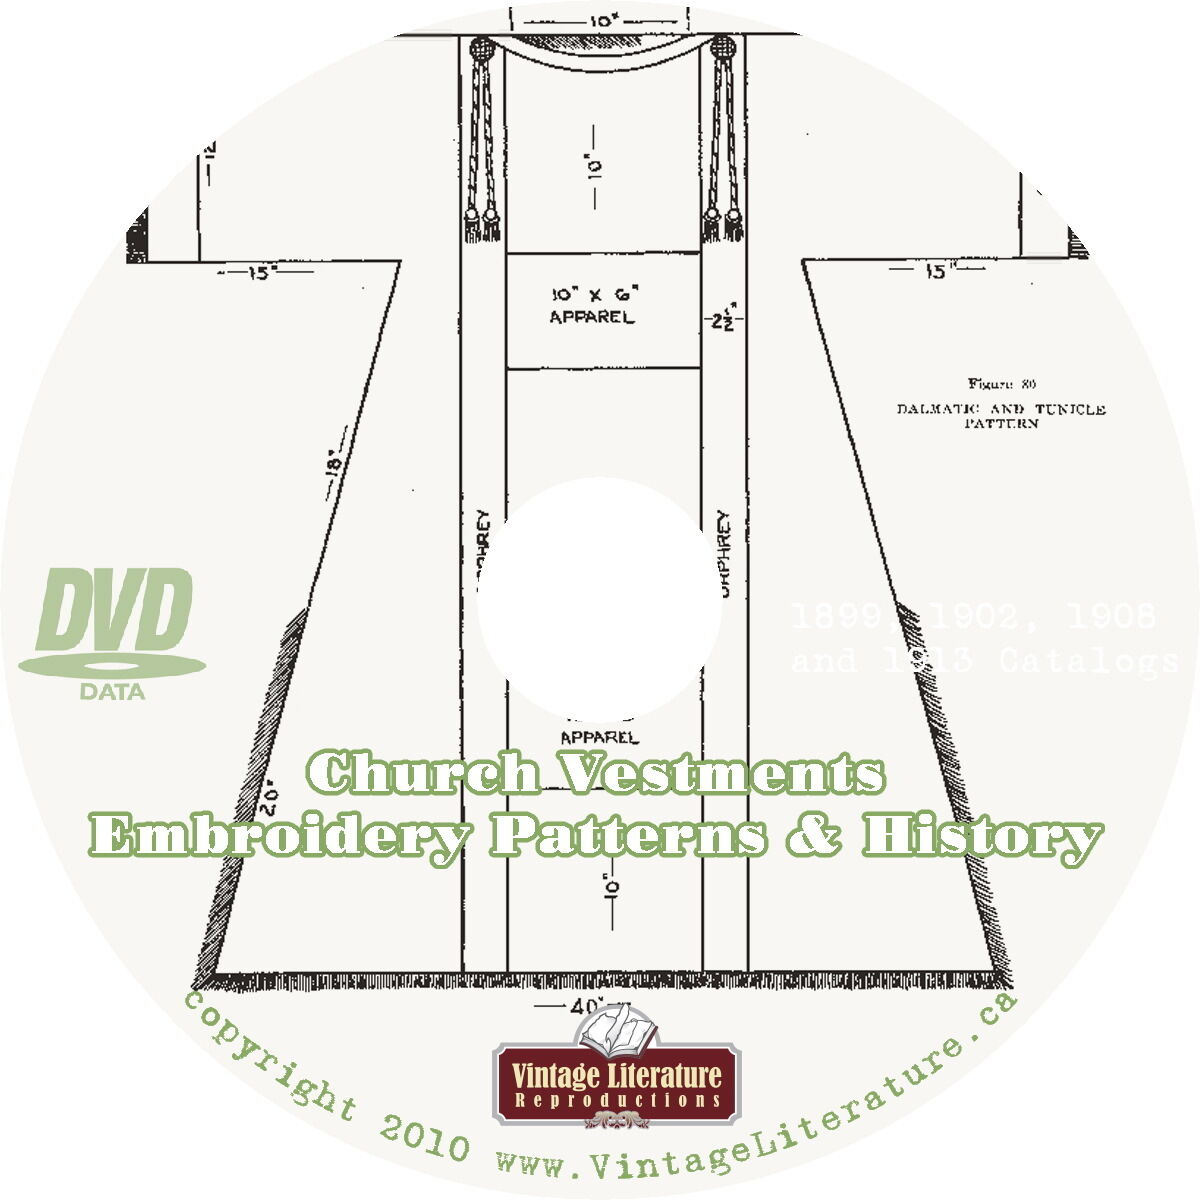 Church vestments eighteen vintage history embroidery pattern picture 1 of 1 bankloansurffo Image collections